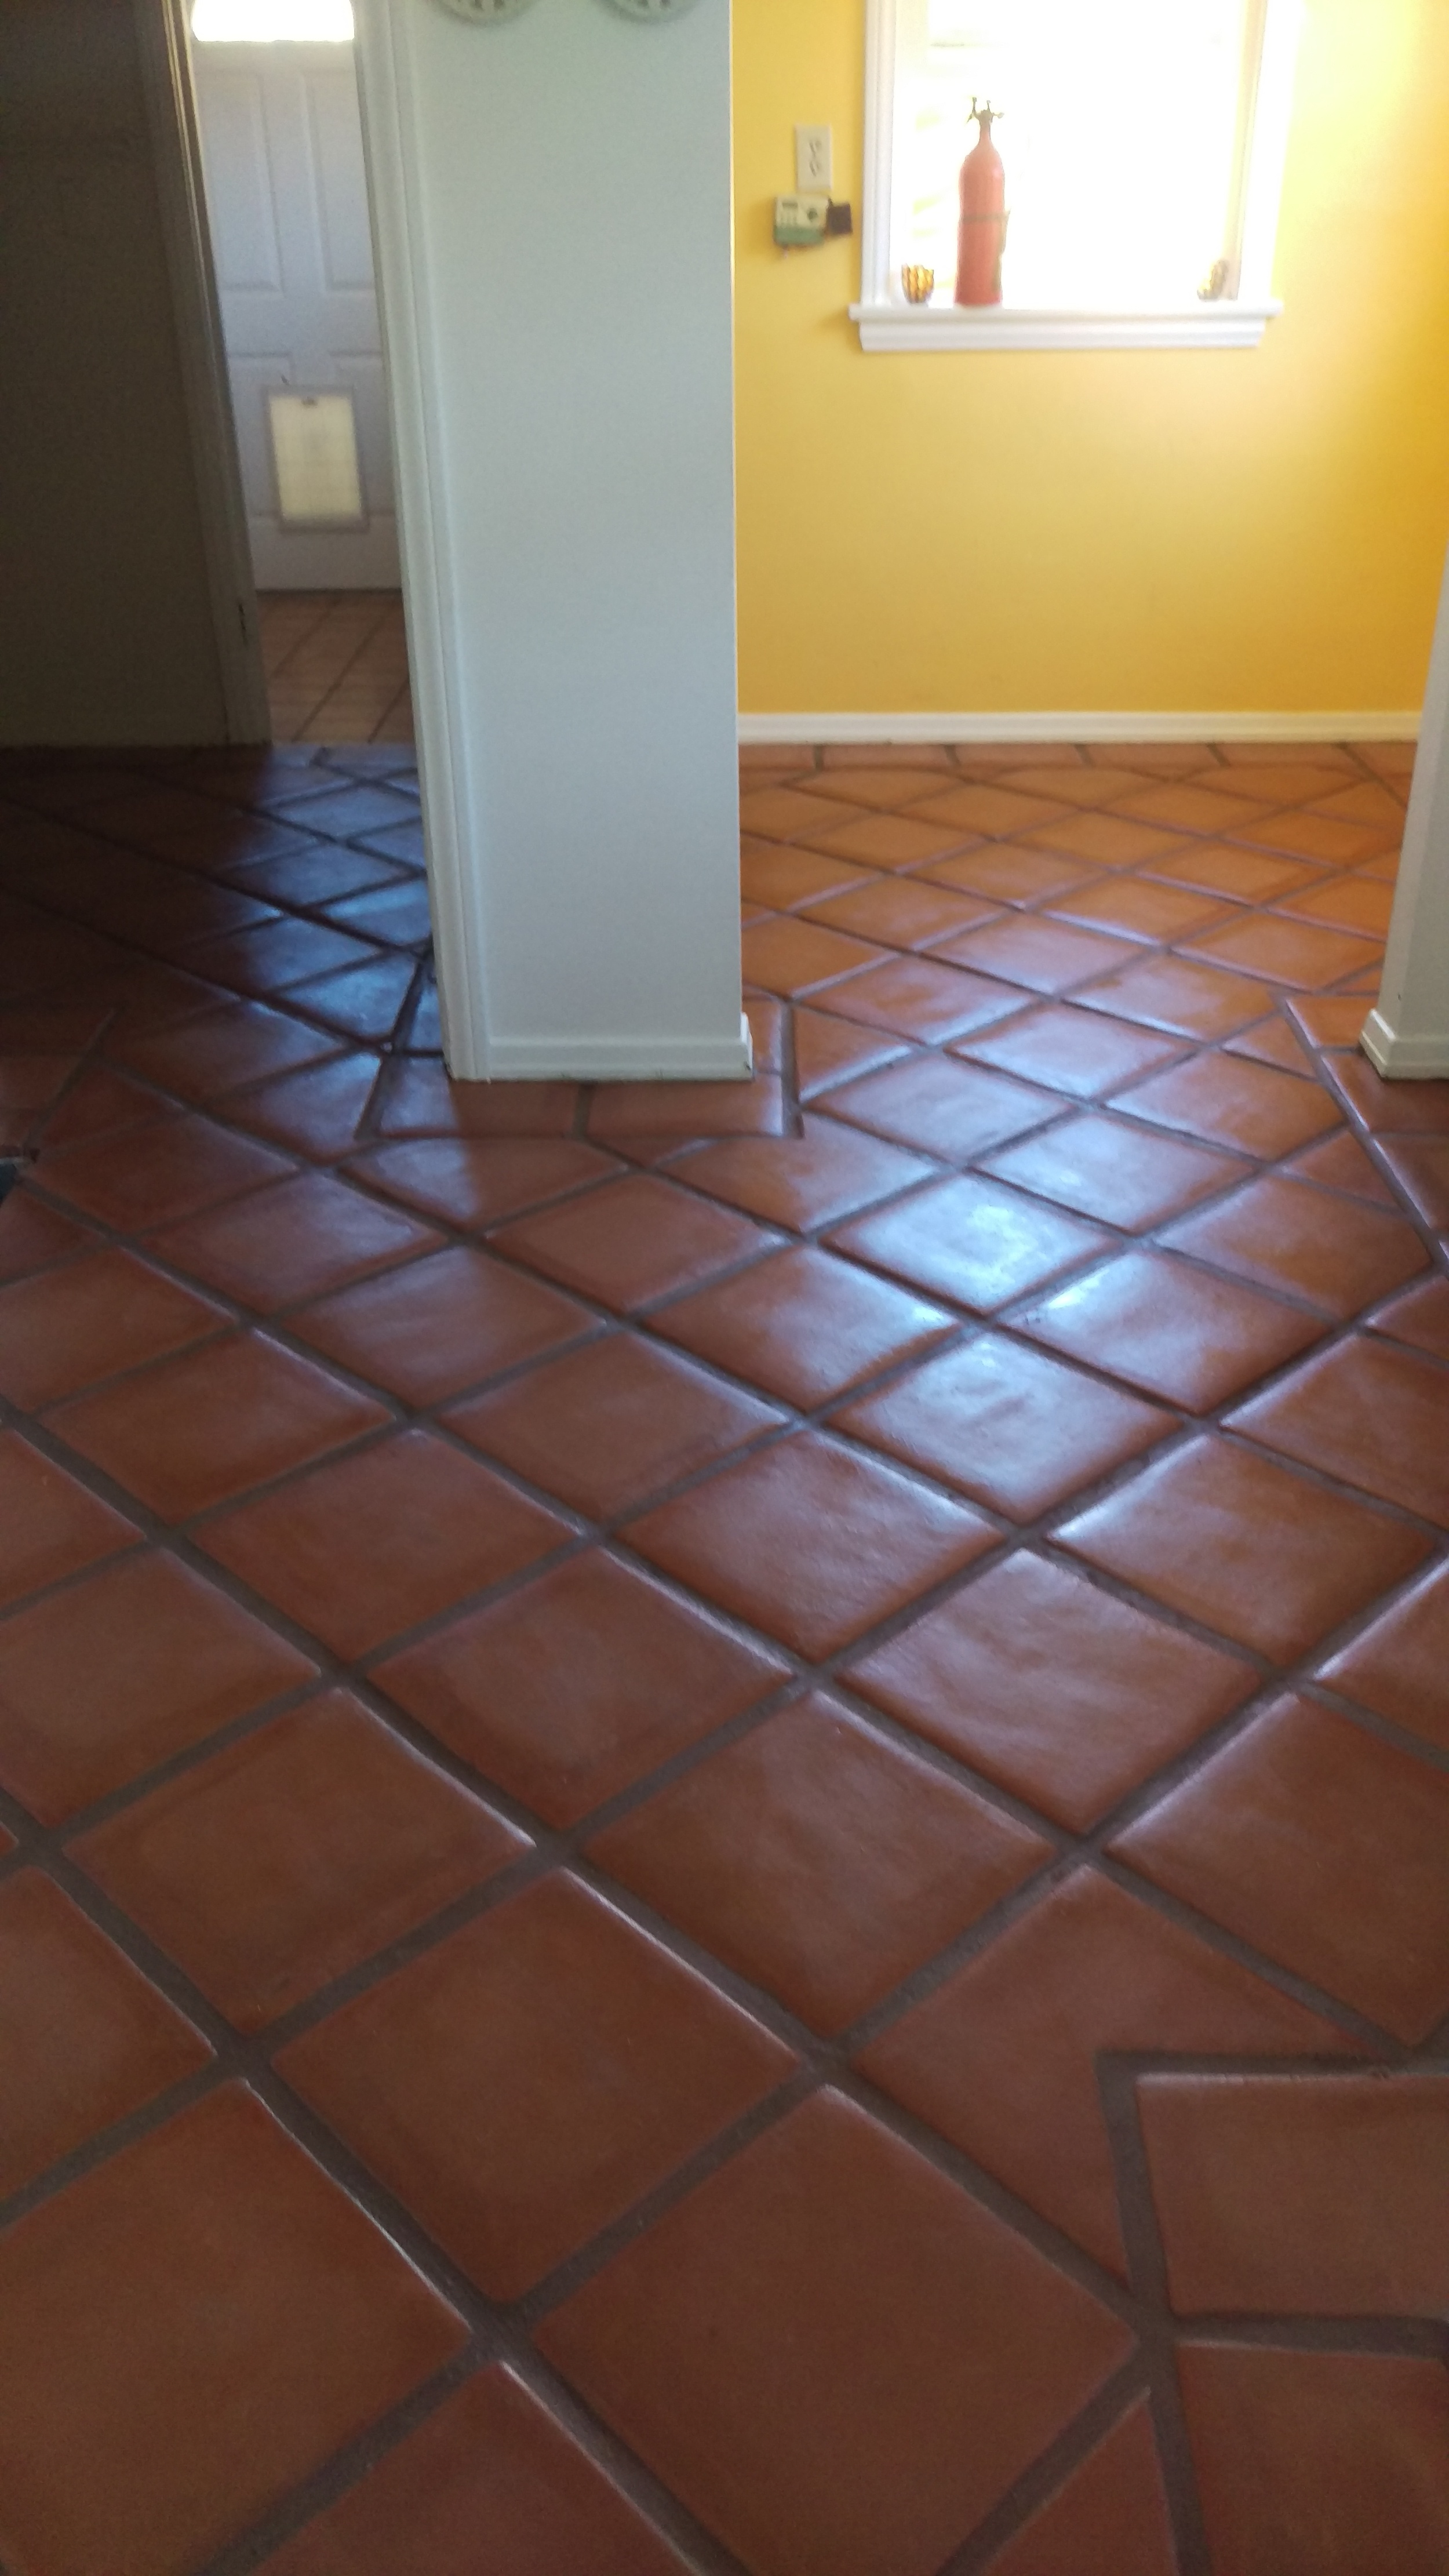 Lincoln Tecate with OLE Mexican Tile Sealer applied & Sand Beige Sanded Grout by Bostik